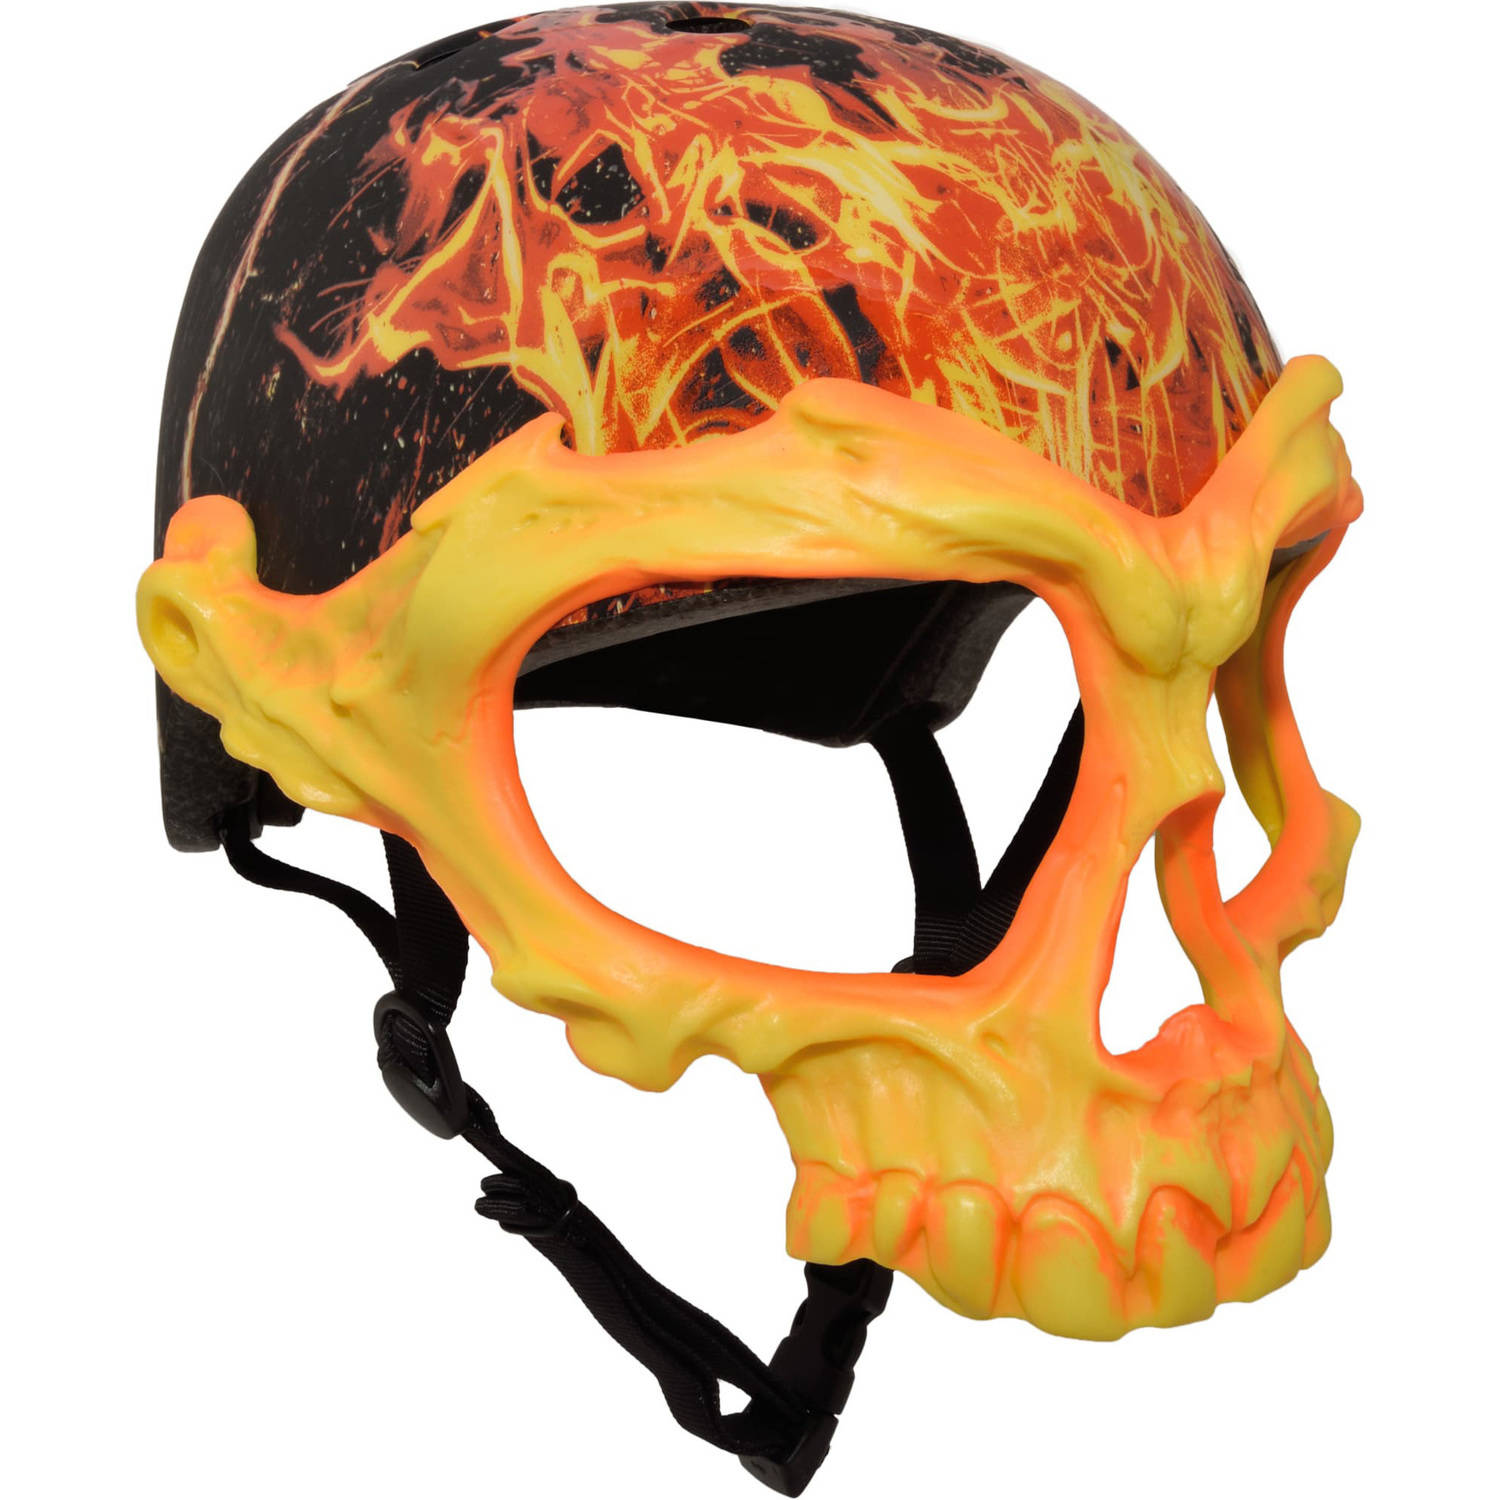 Krash! Inferno Skull Mask Helmet, Youth 8+ (54-58cm)